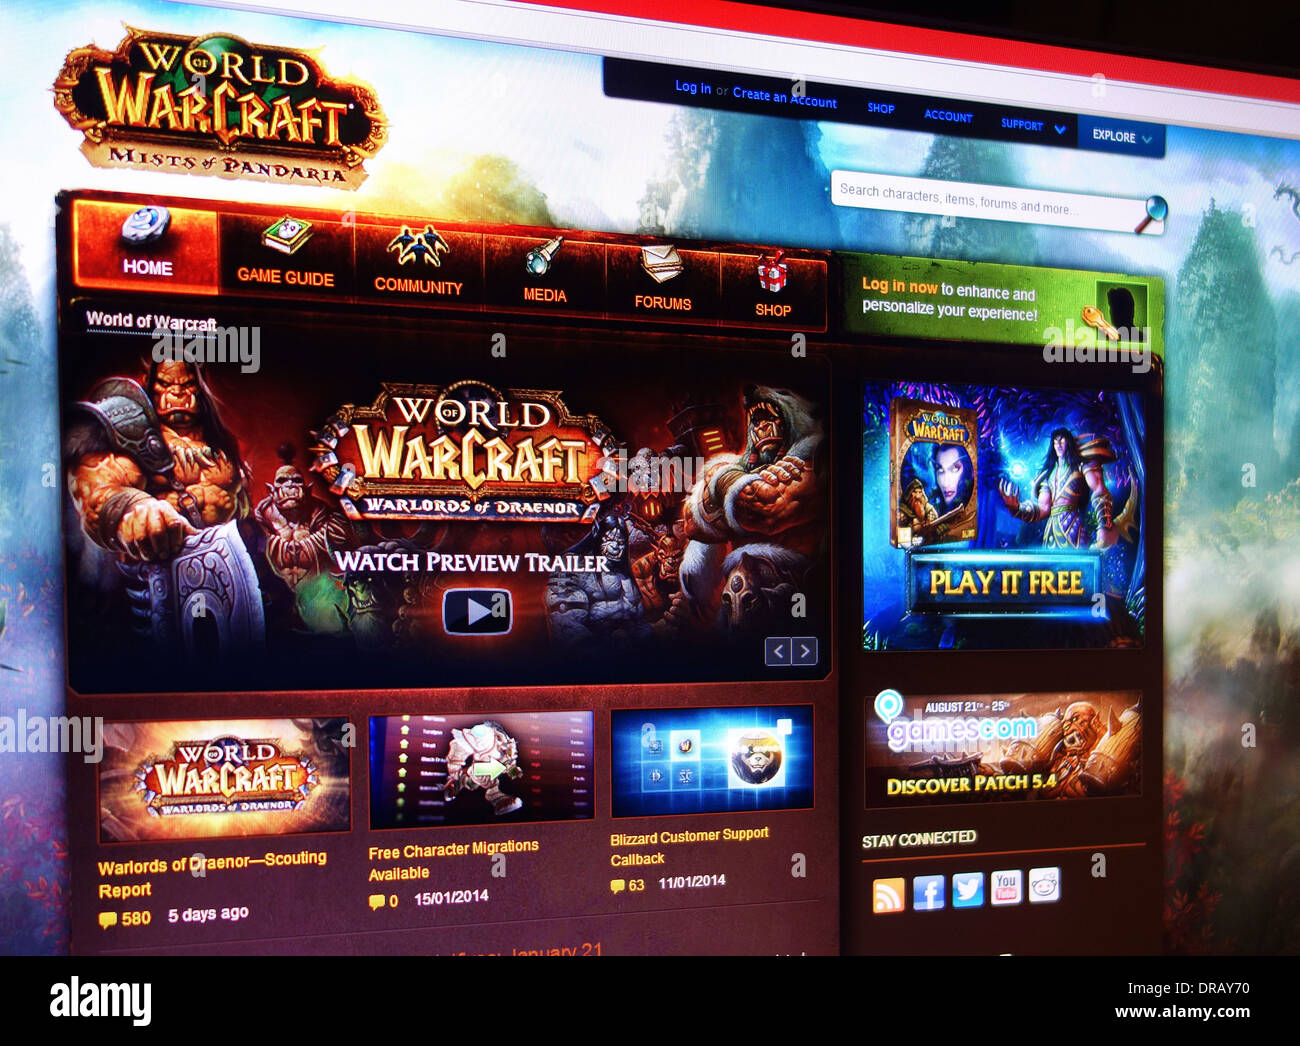 World of warcraft site web de jeu Photo Stock